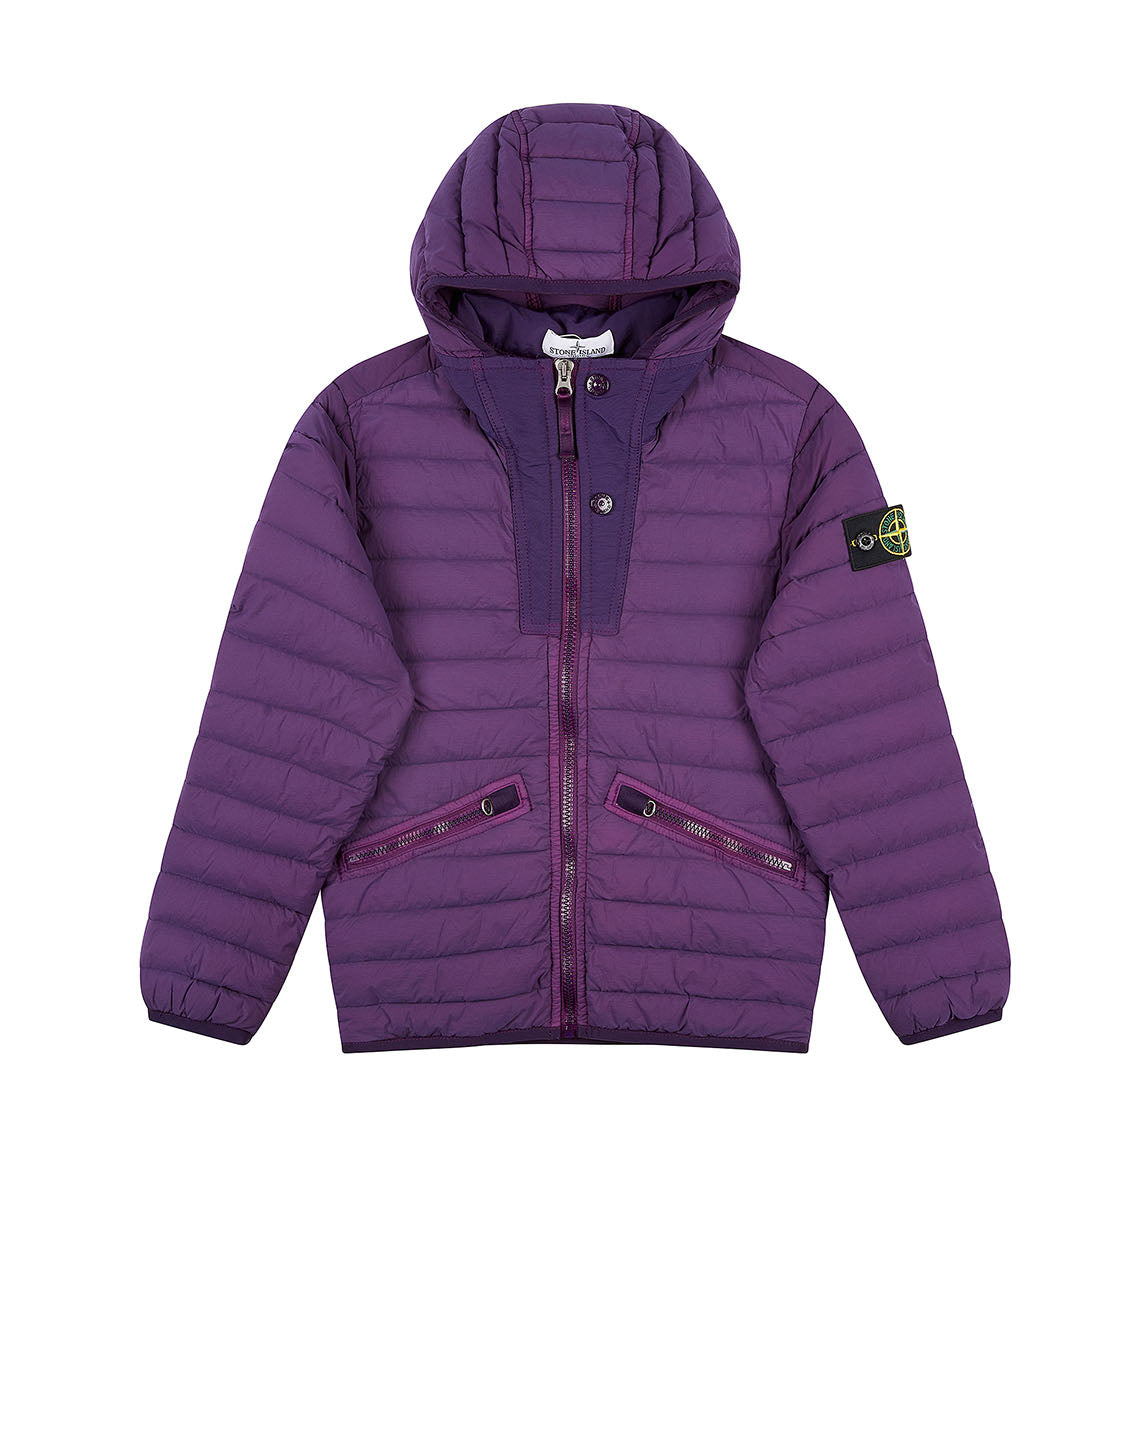 40632 Hooded Jacket in Purple